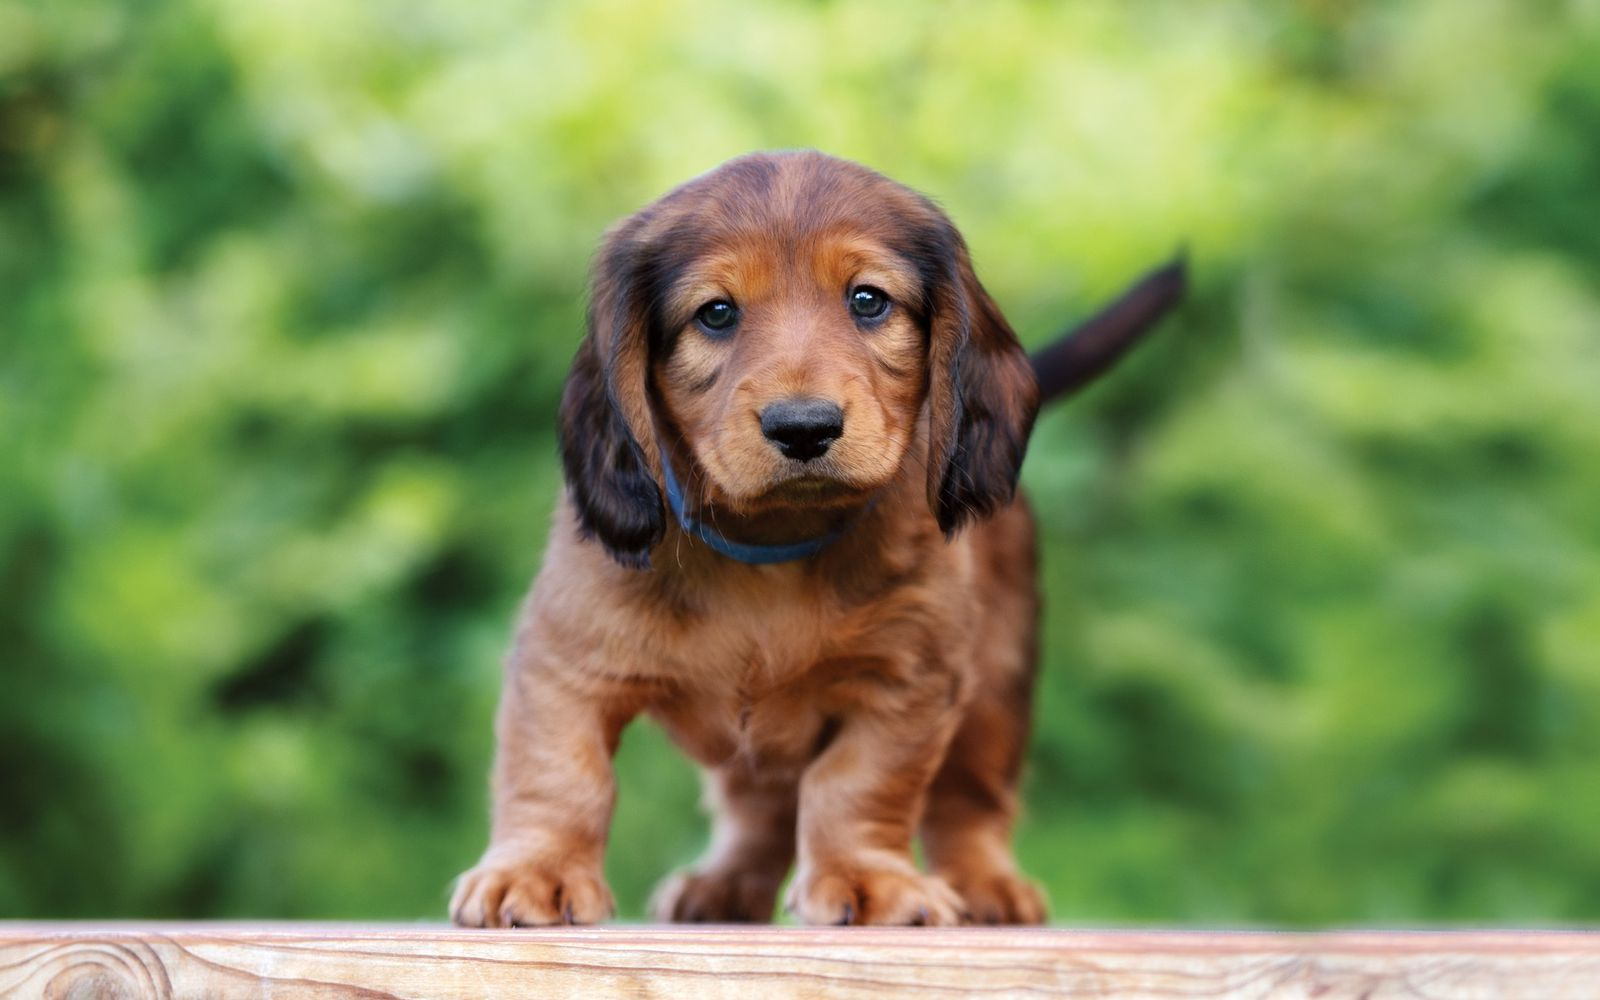 Dachshund (Miniature Long Haired) - Puppy